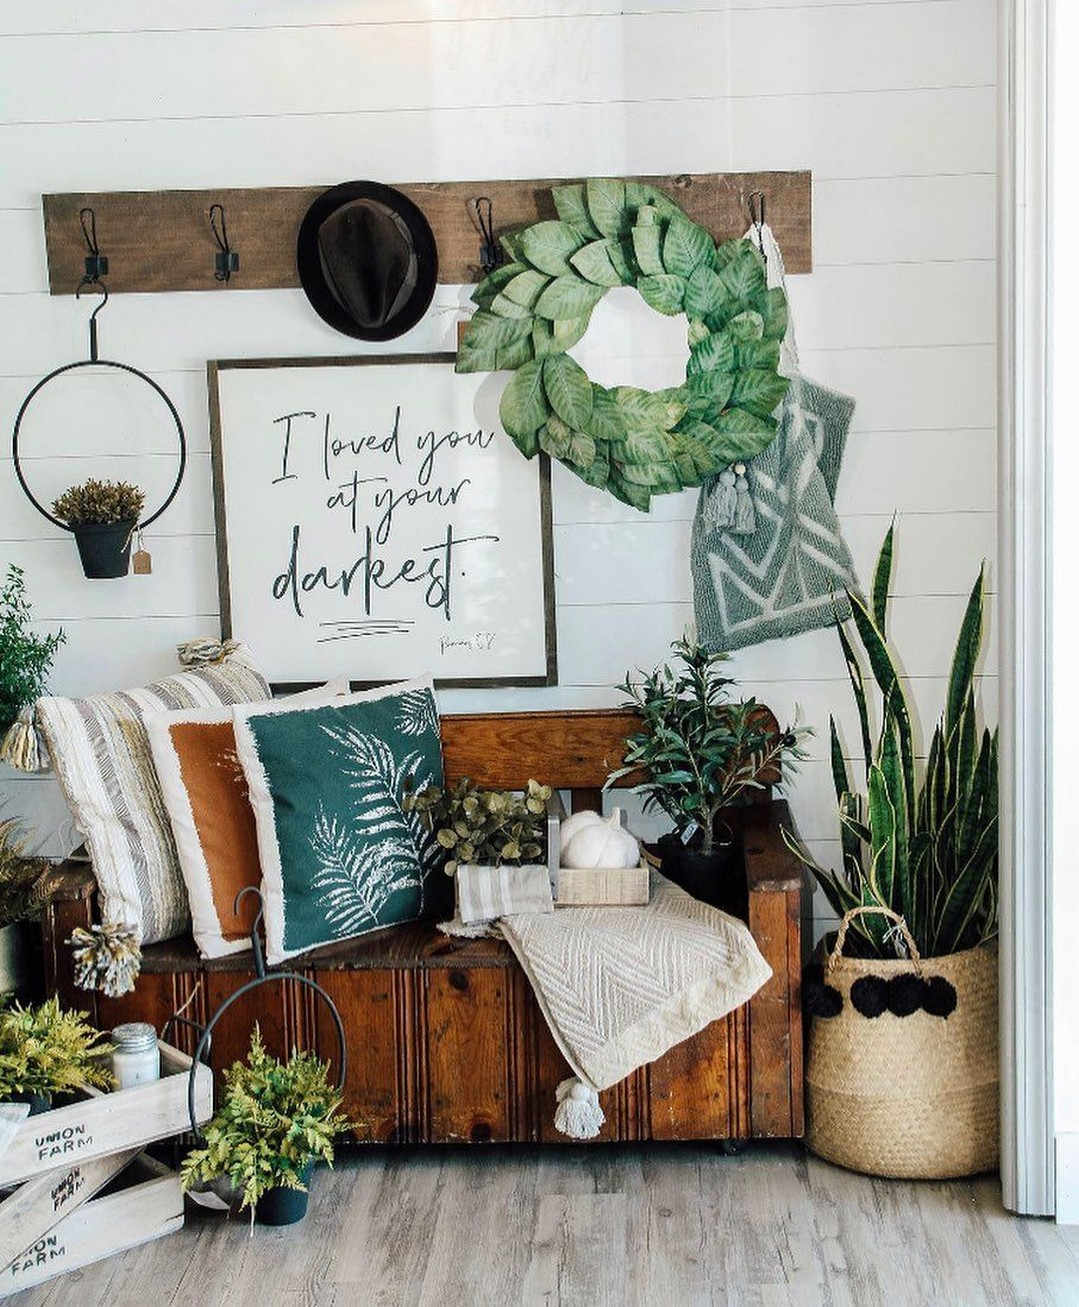 67 Rustic Home Decorating Ideas In 2020 Home Decor 43